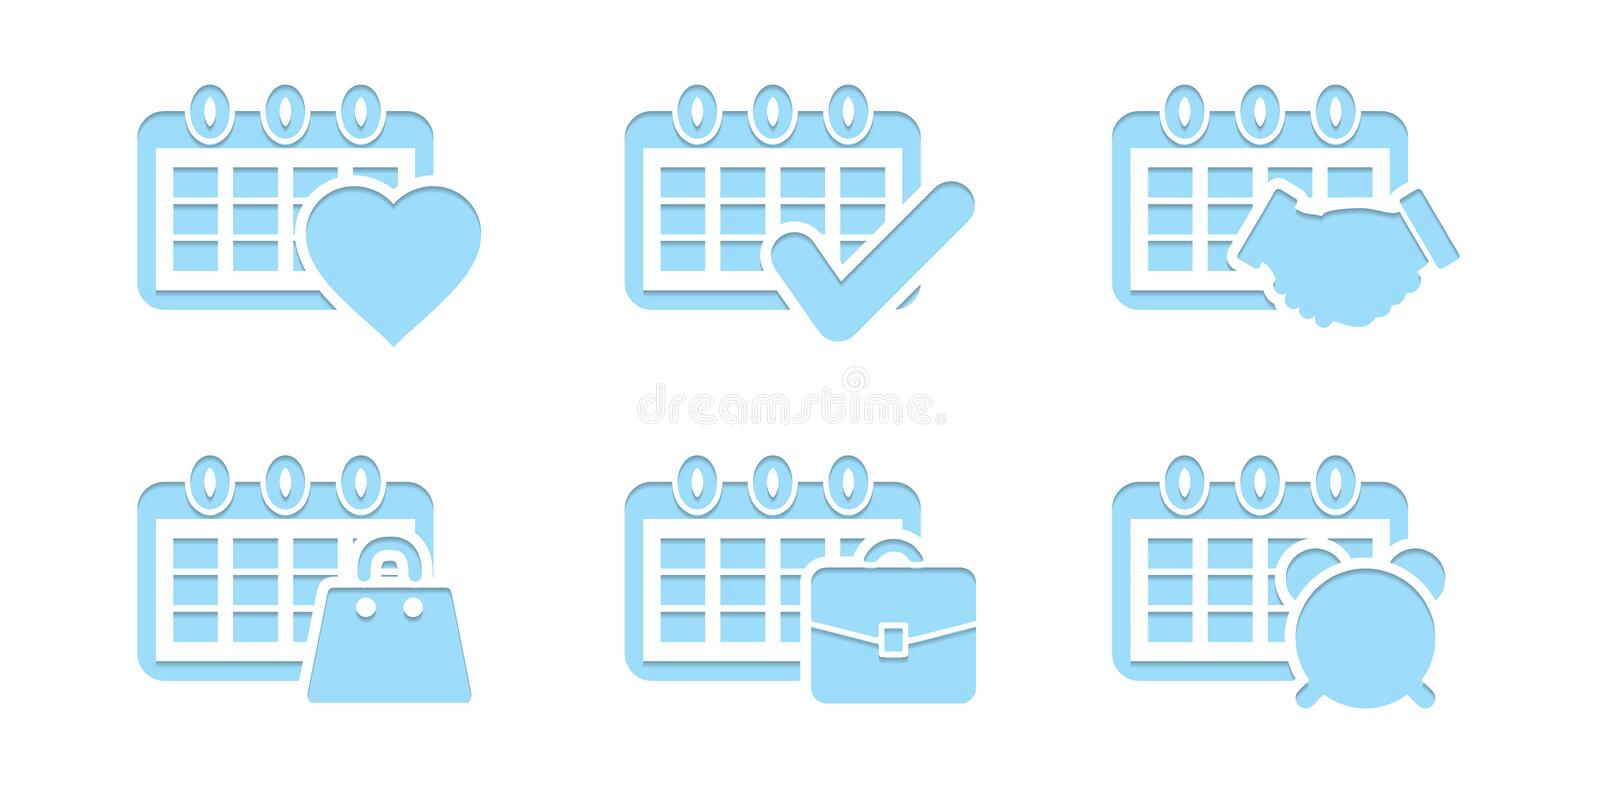 To do list icon collection concept. Office working royalty free illustration